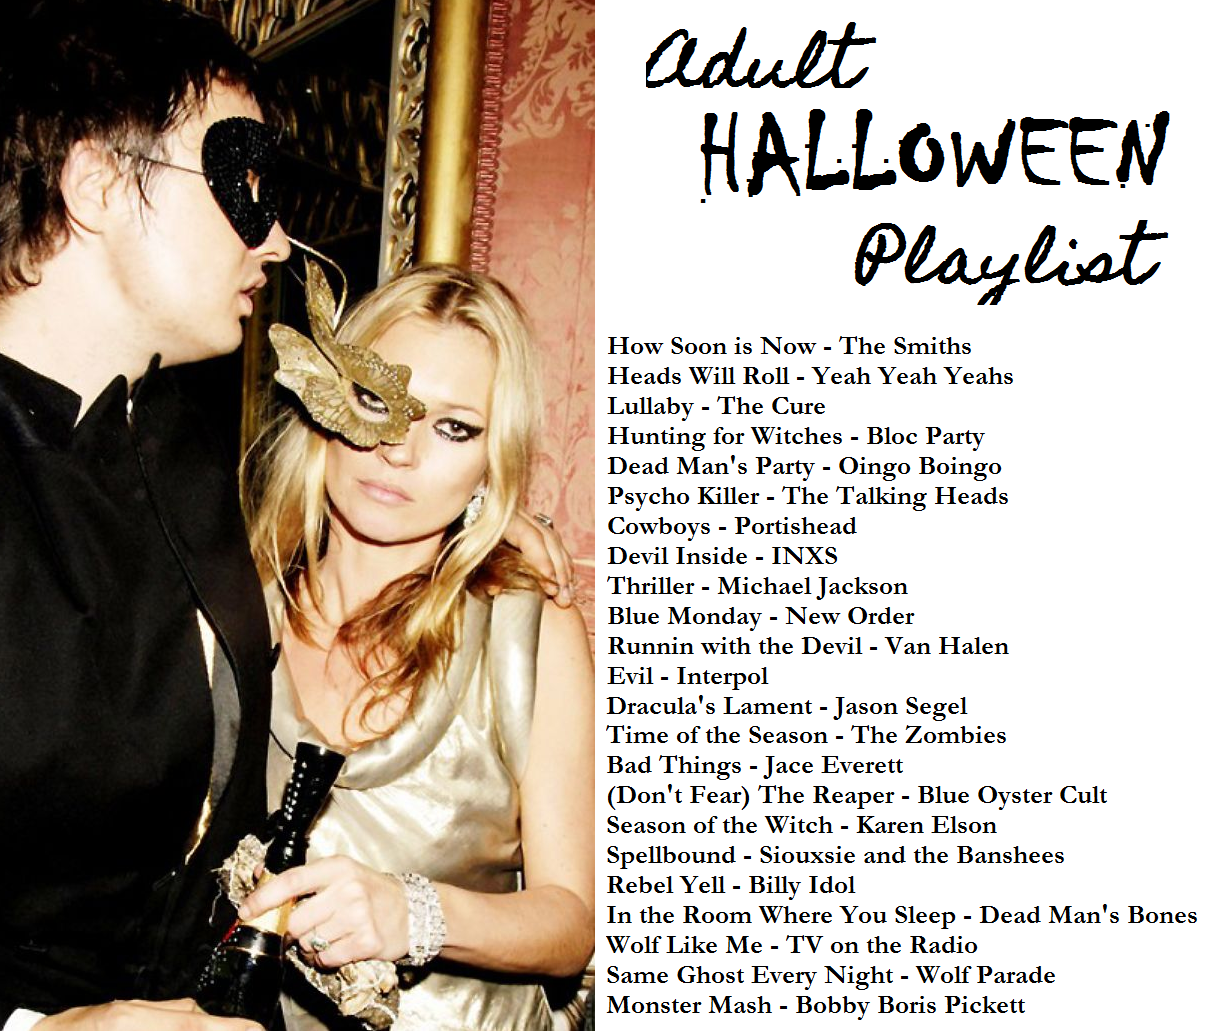 Halloween Event Ideas For Adults: Adult Halloween Party Playlist